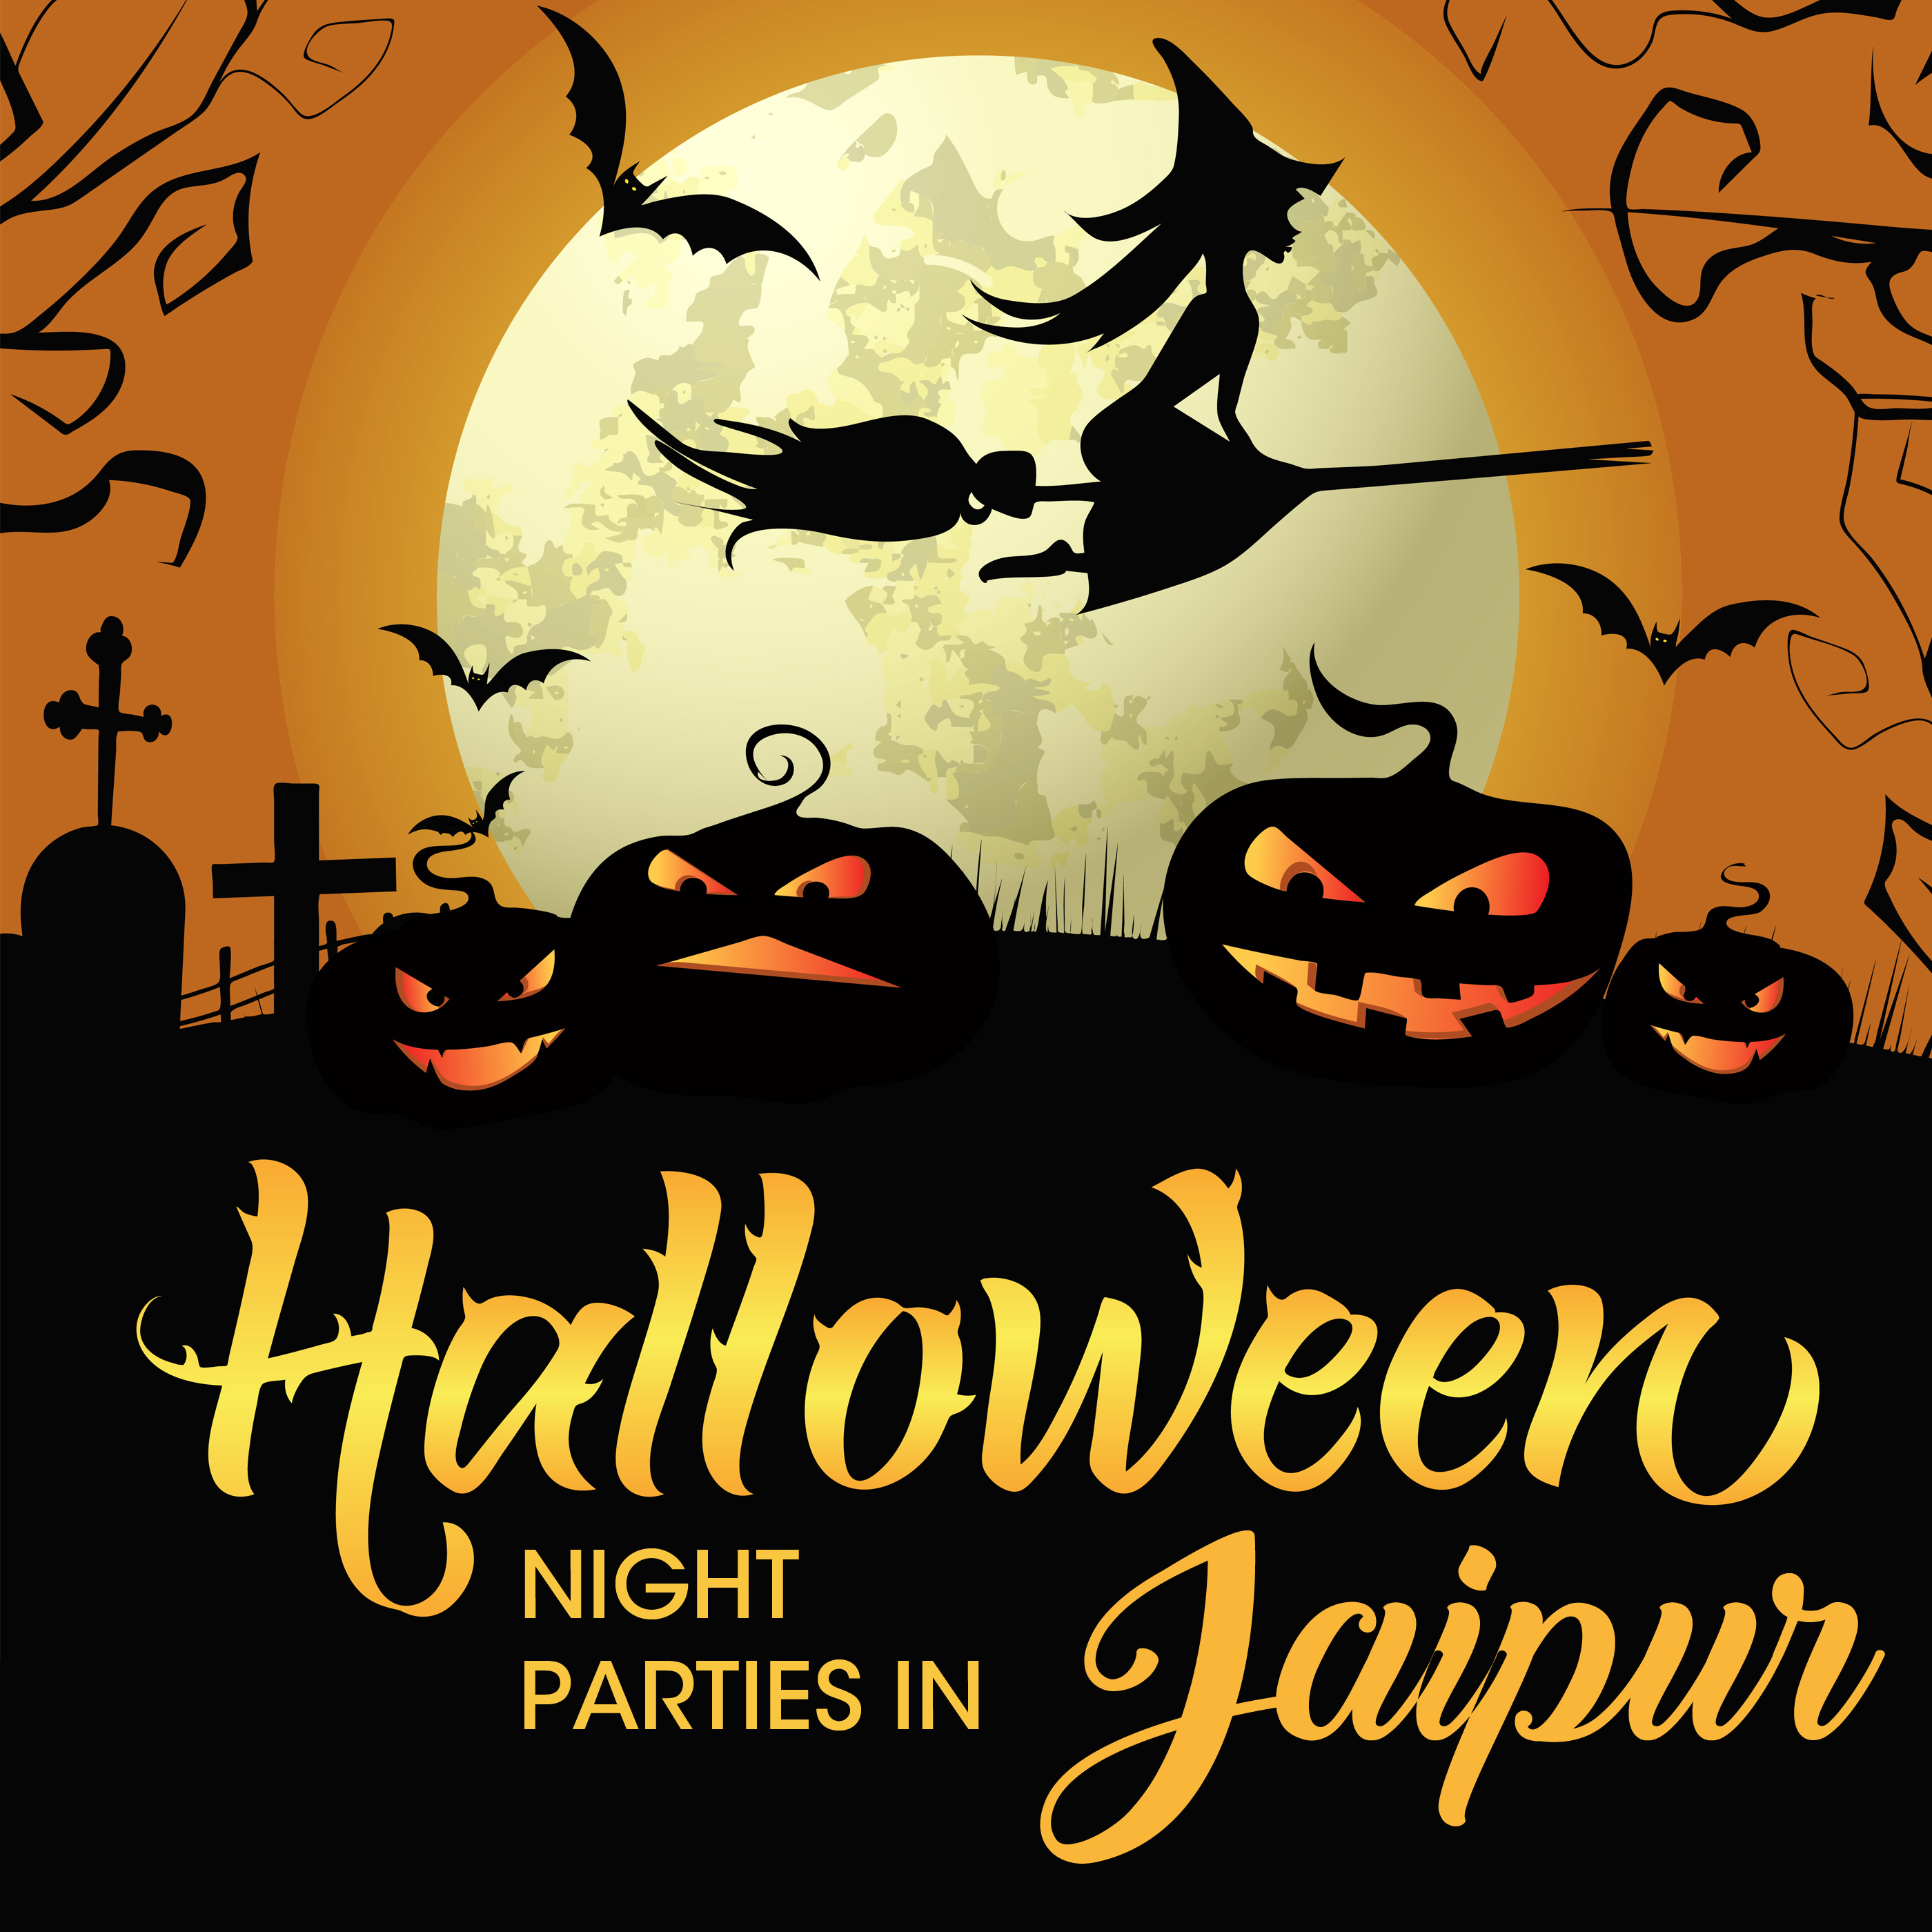 Halloween Night Parties in Jaipur